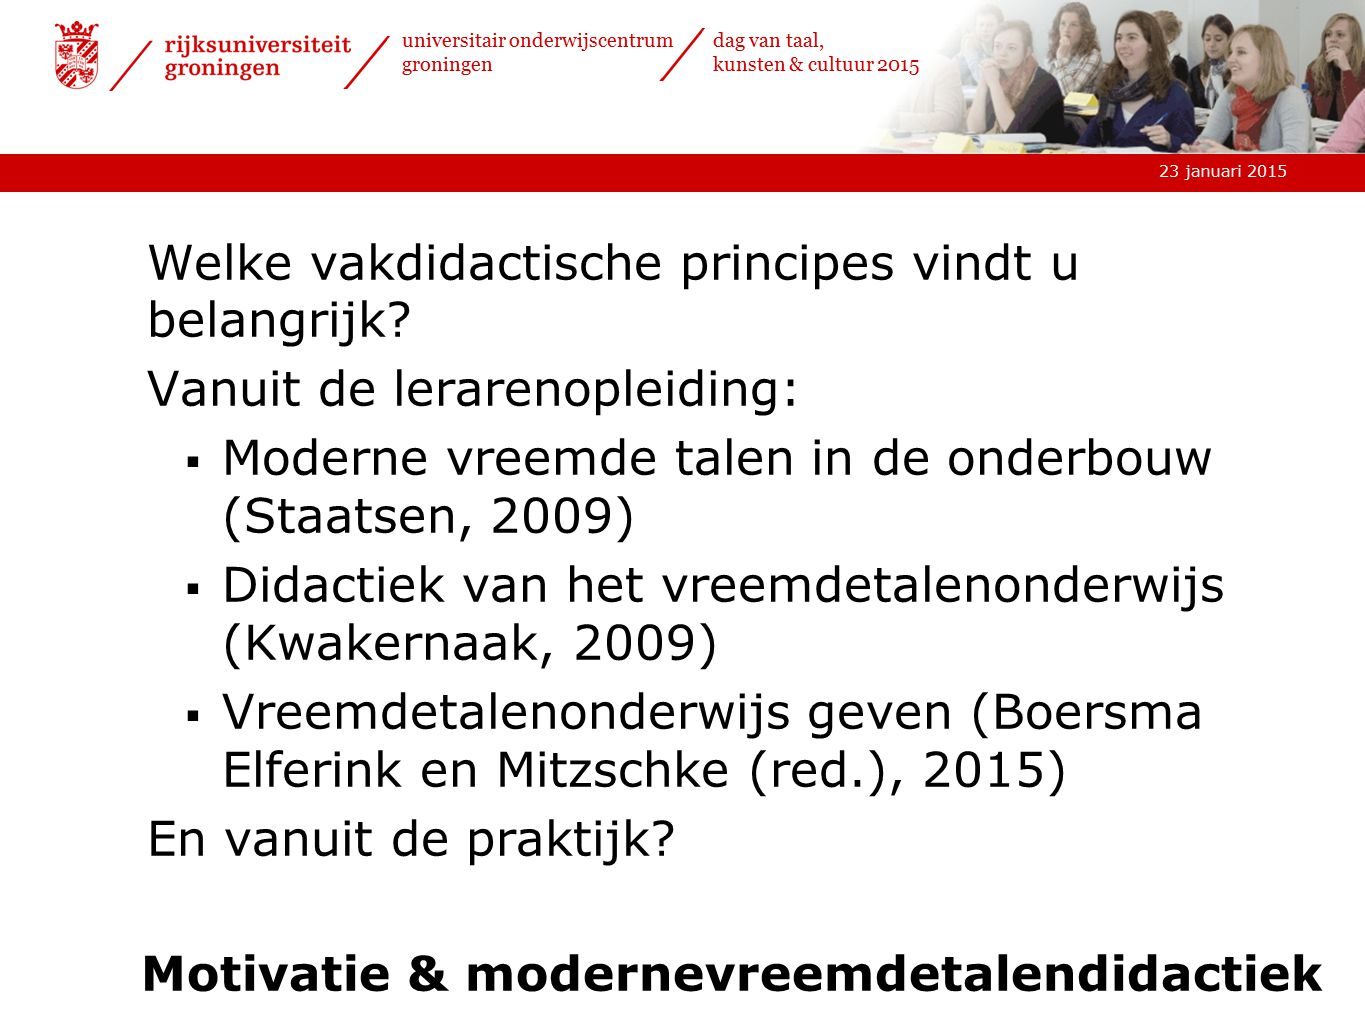 Motivatie & modernevreemdetalendidactiek